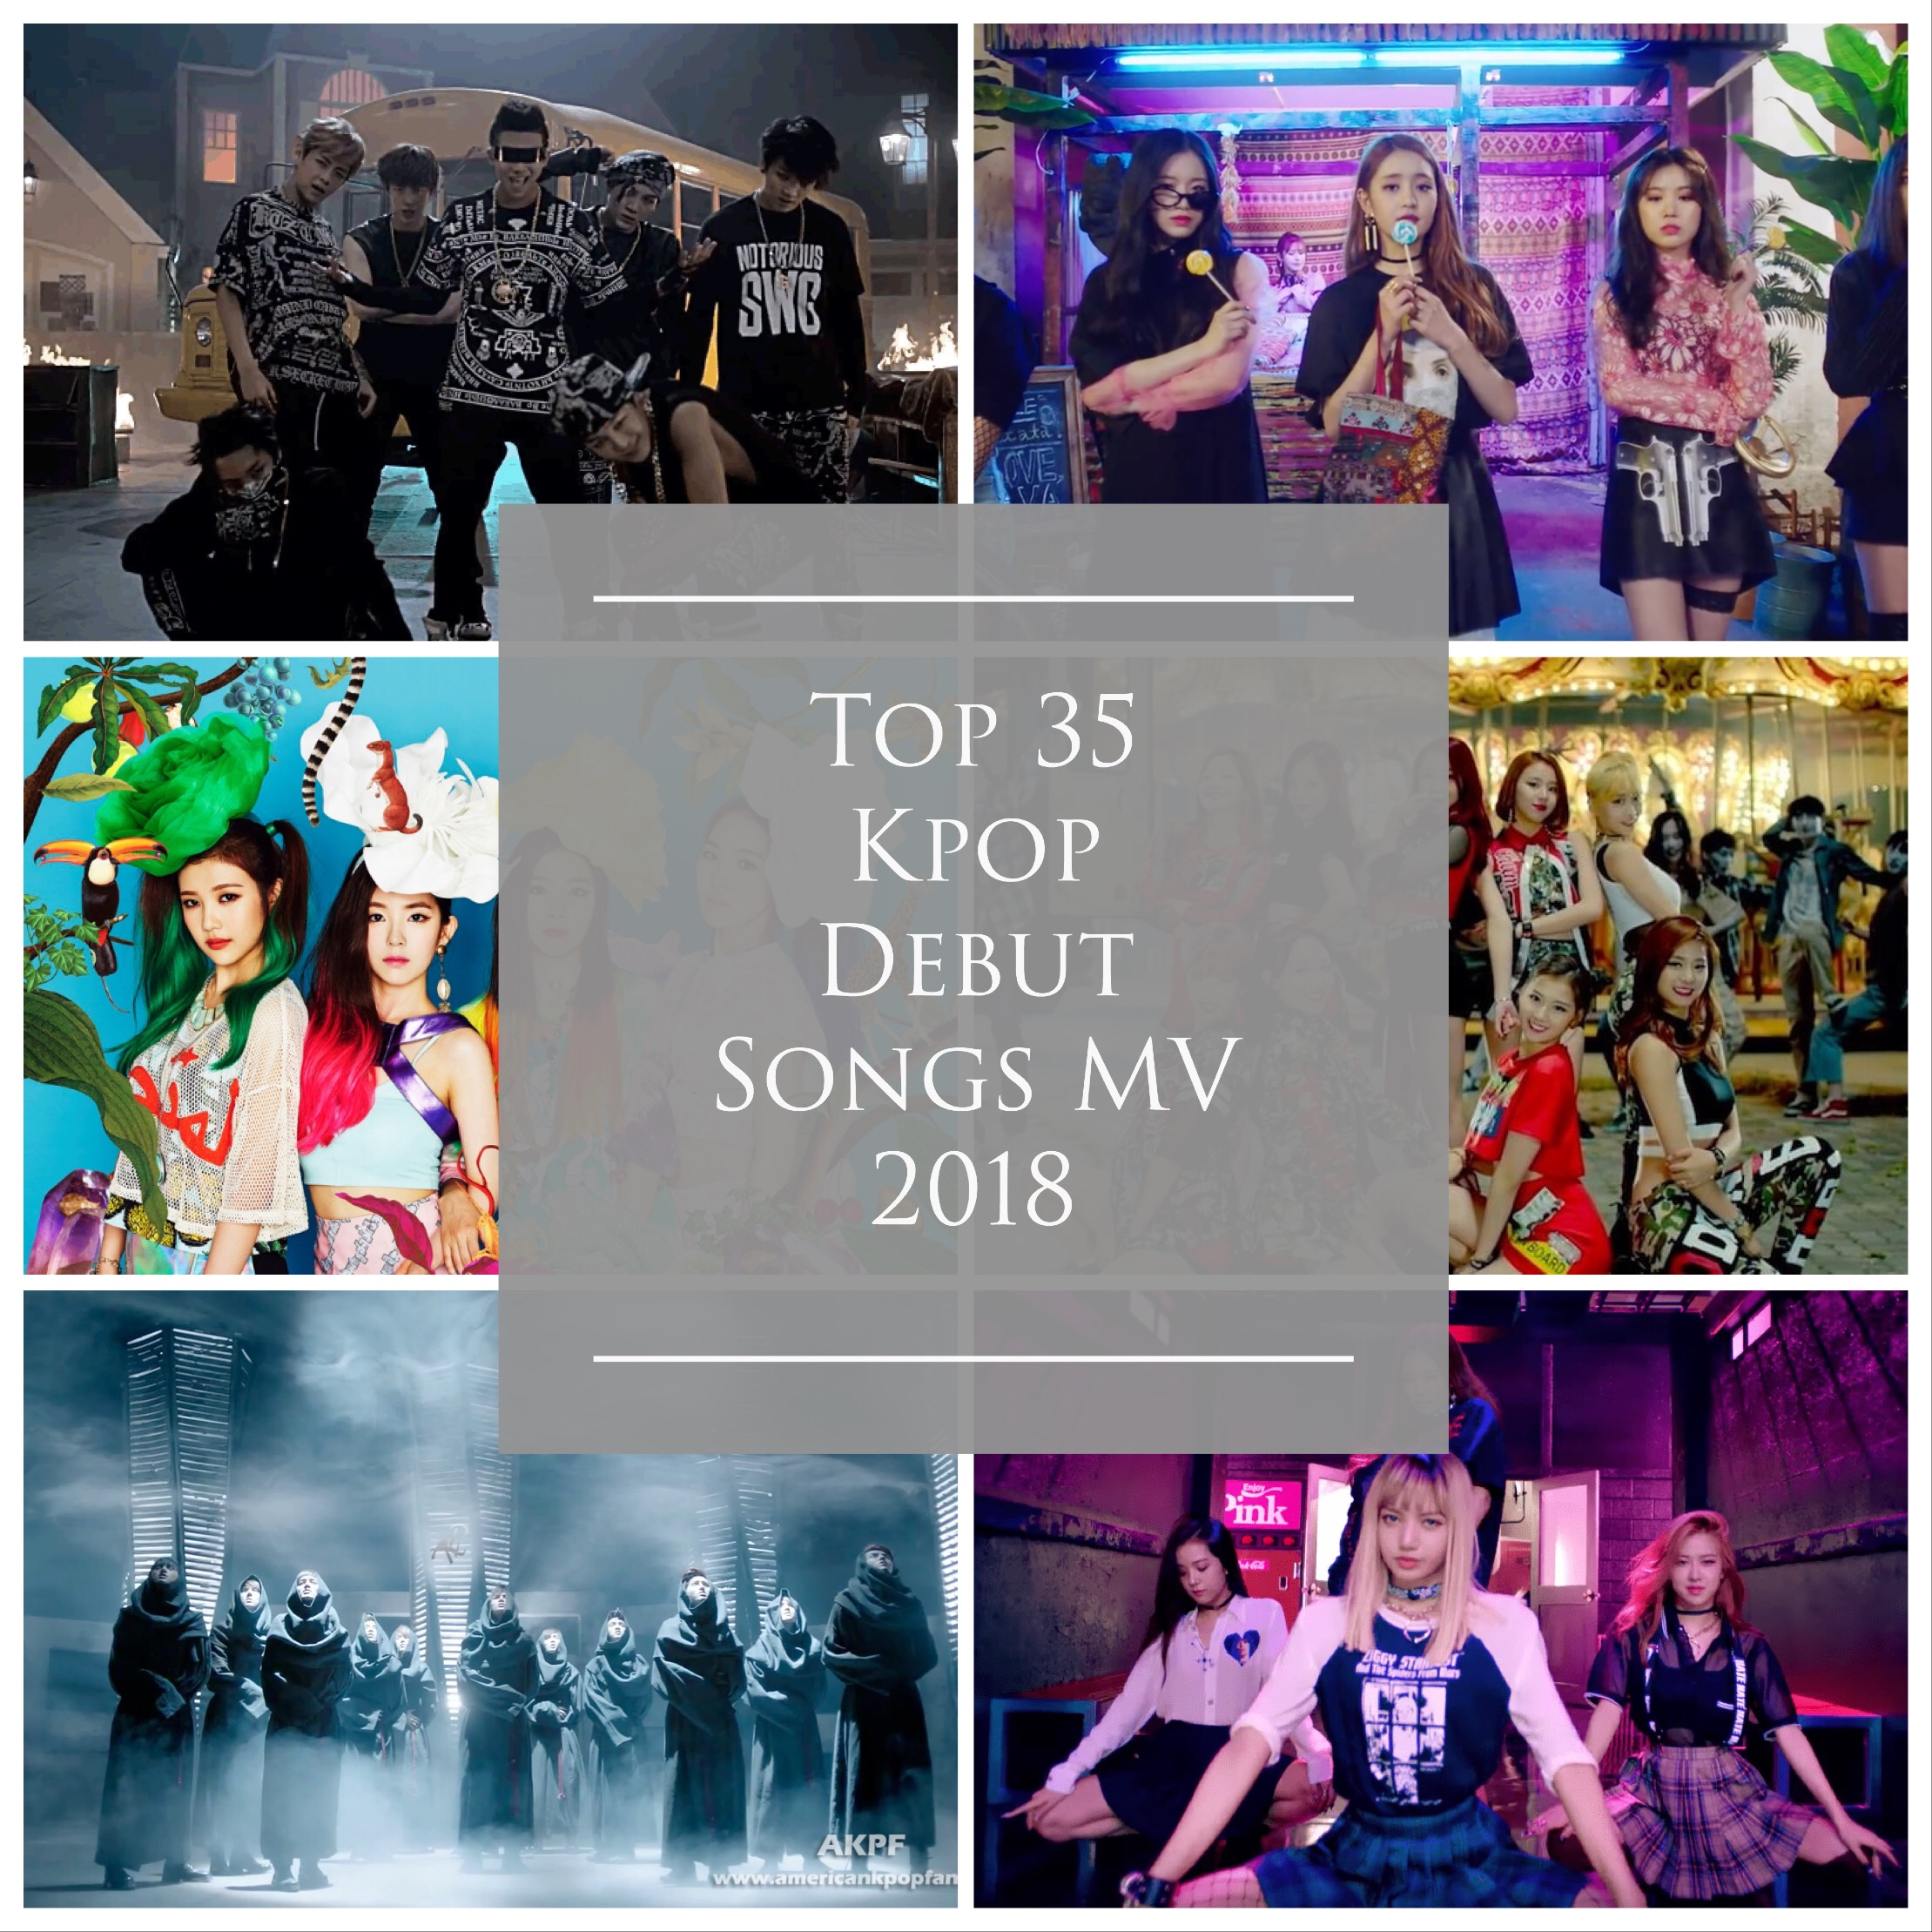 Top 35 Kpop Debut Songs MV 2018